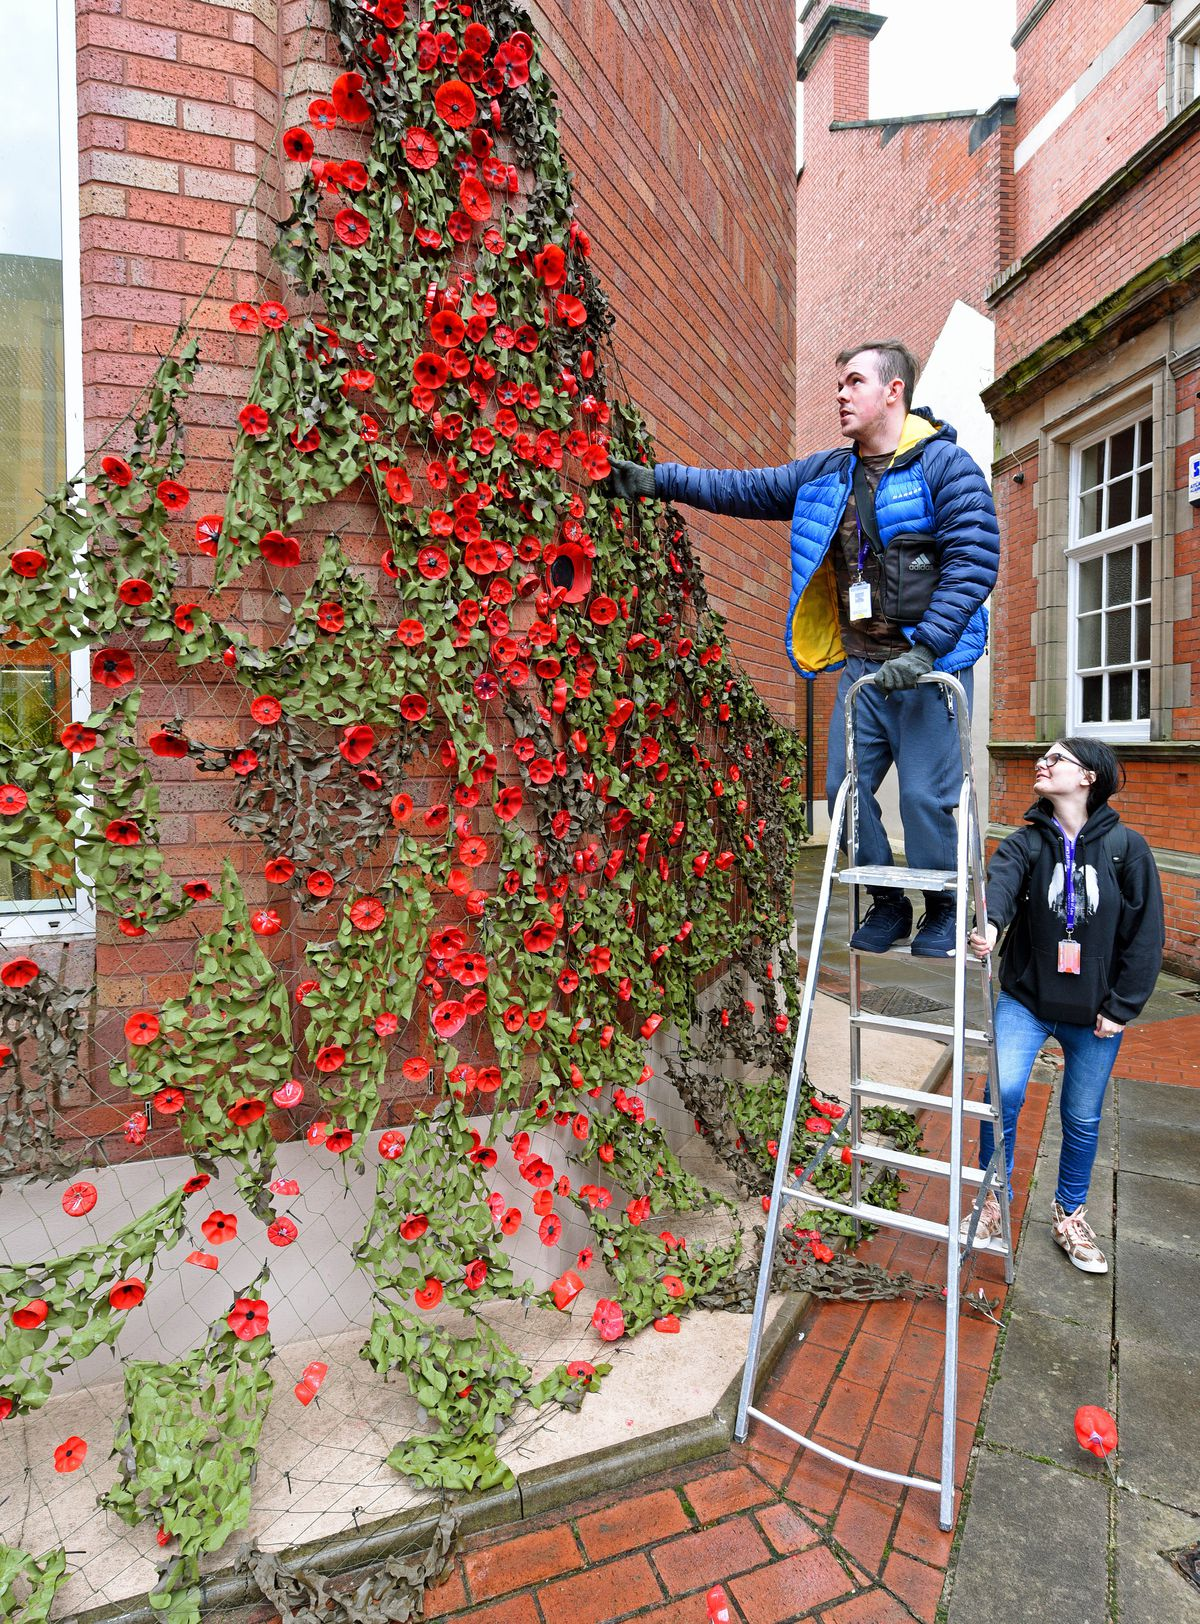 Foundation Studies Creative Arts students next to their poppy display at Stafford College, which were made from plastic bottles. Students Dean Sykes and Sophie Pooler make final adjustments